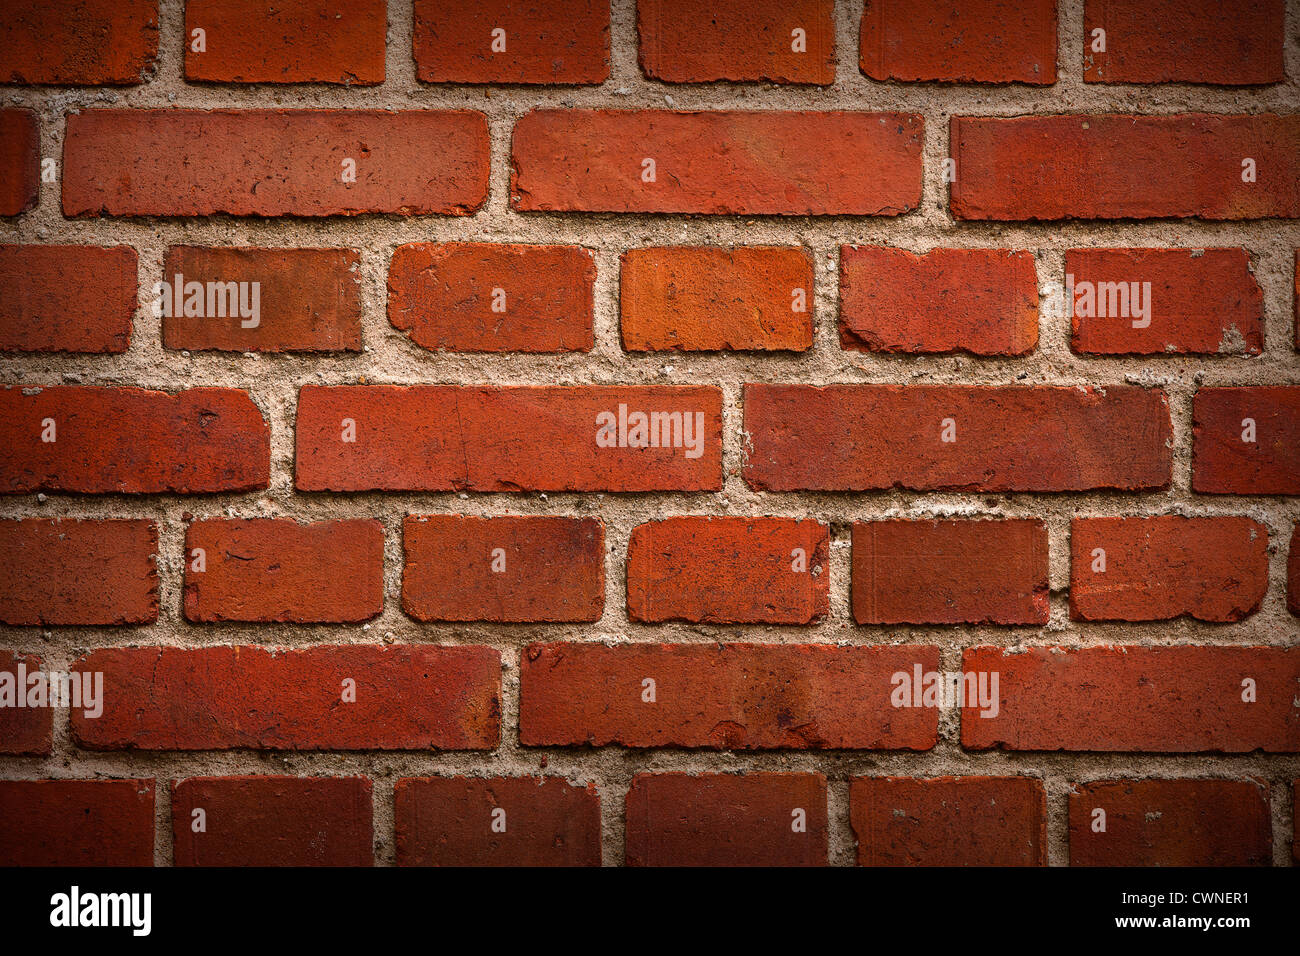 old red brick wall background with shadows in corners Stock Photo